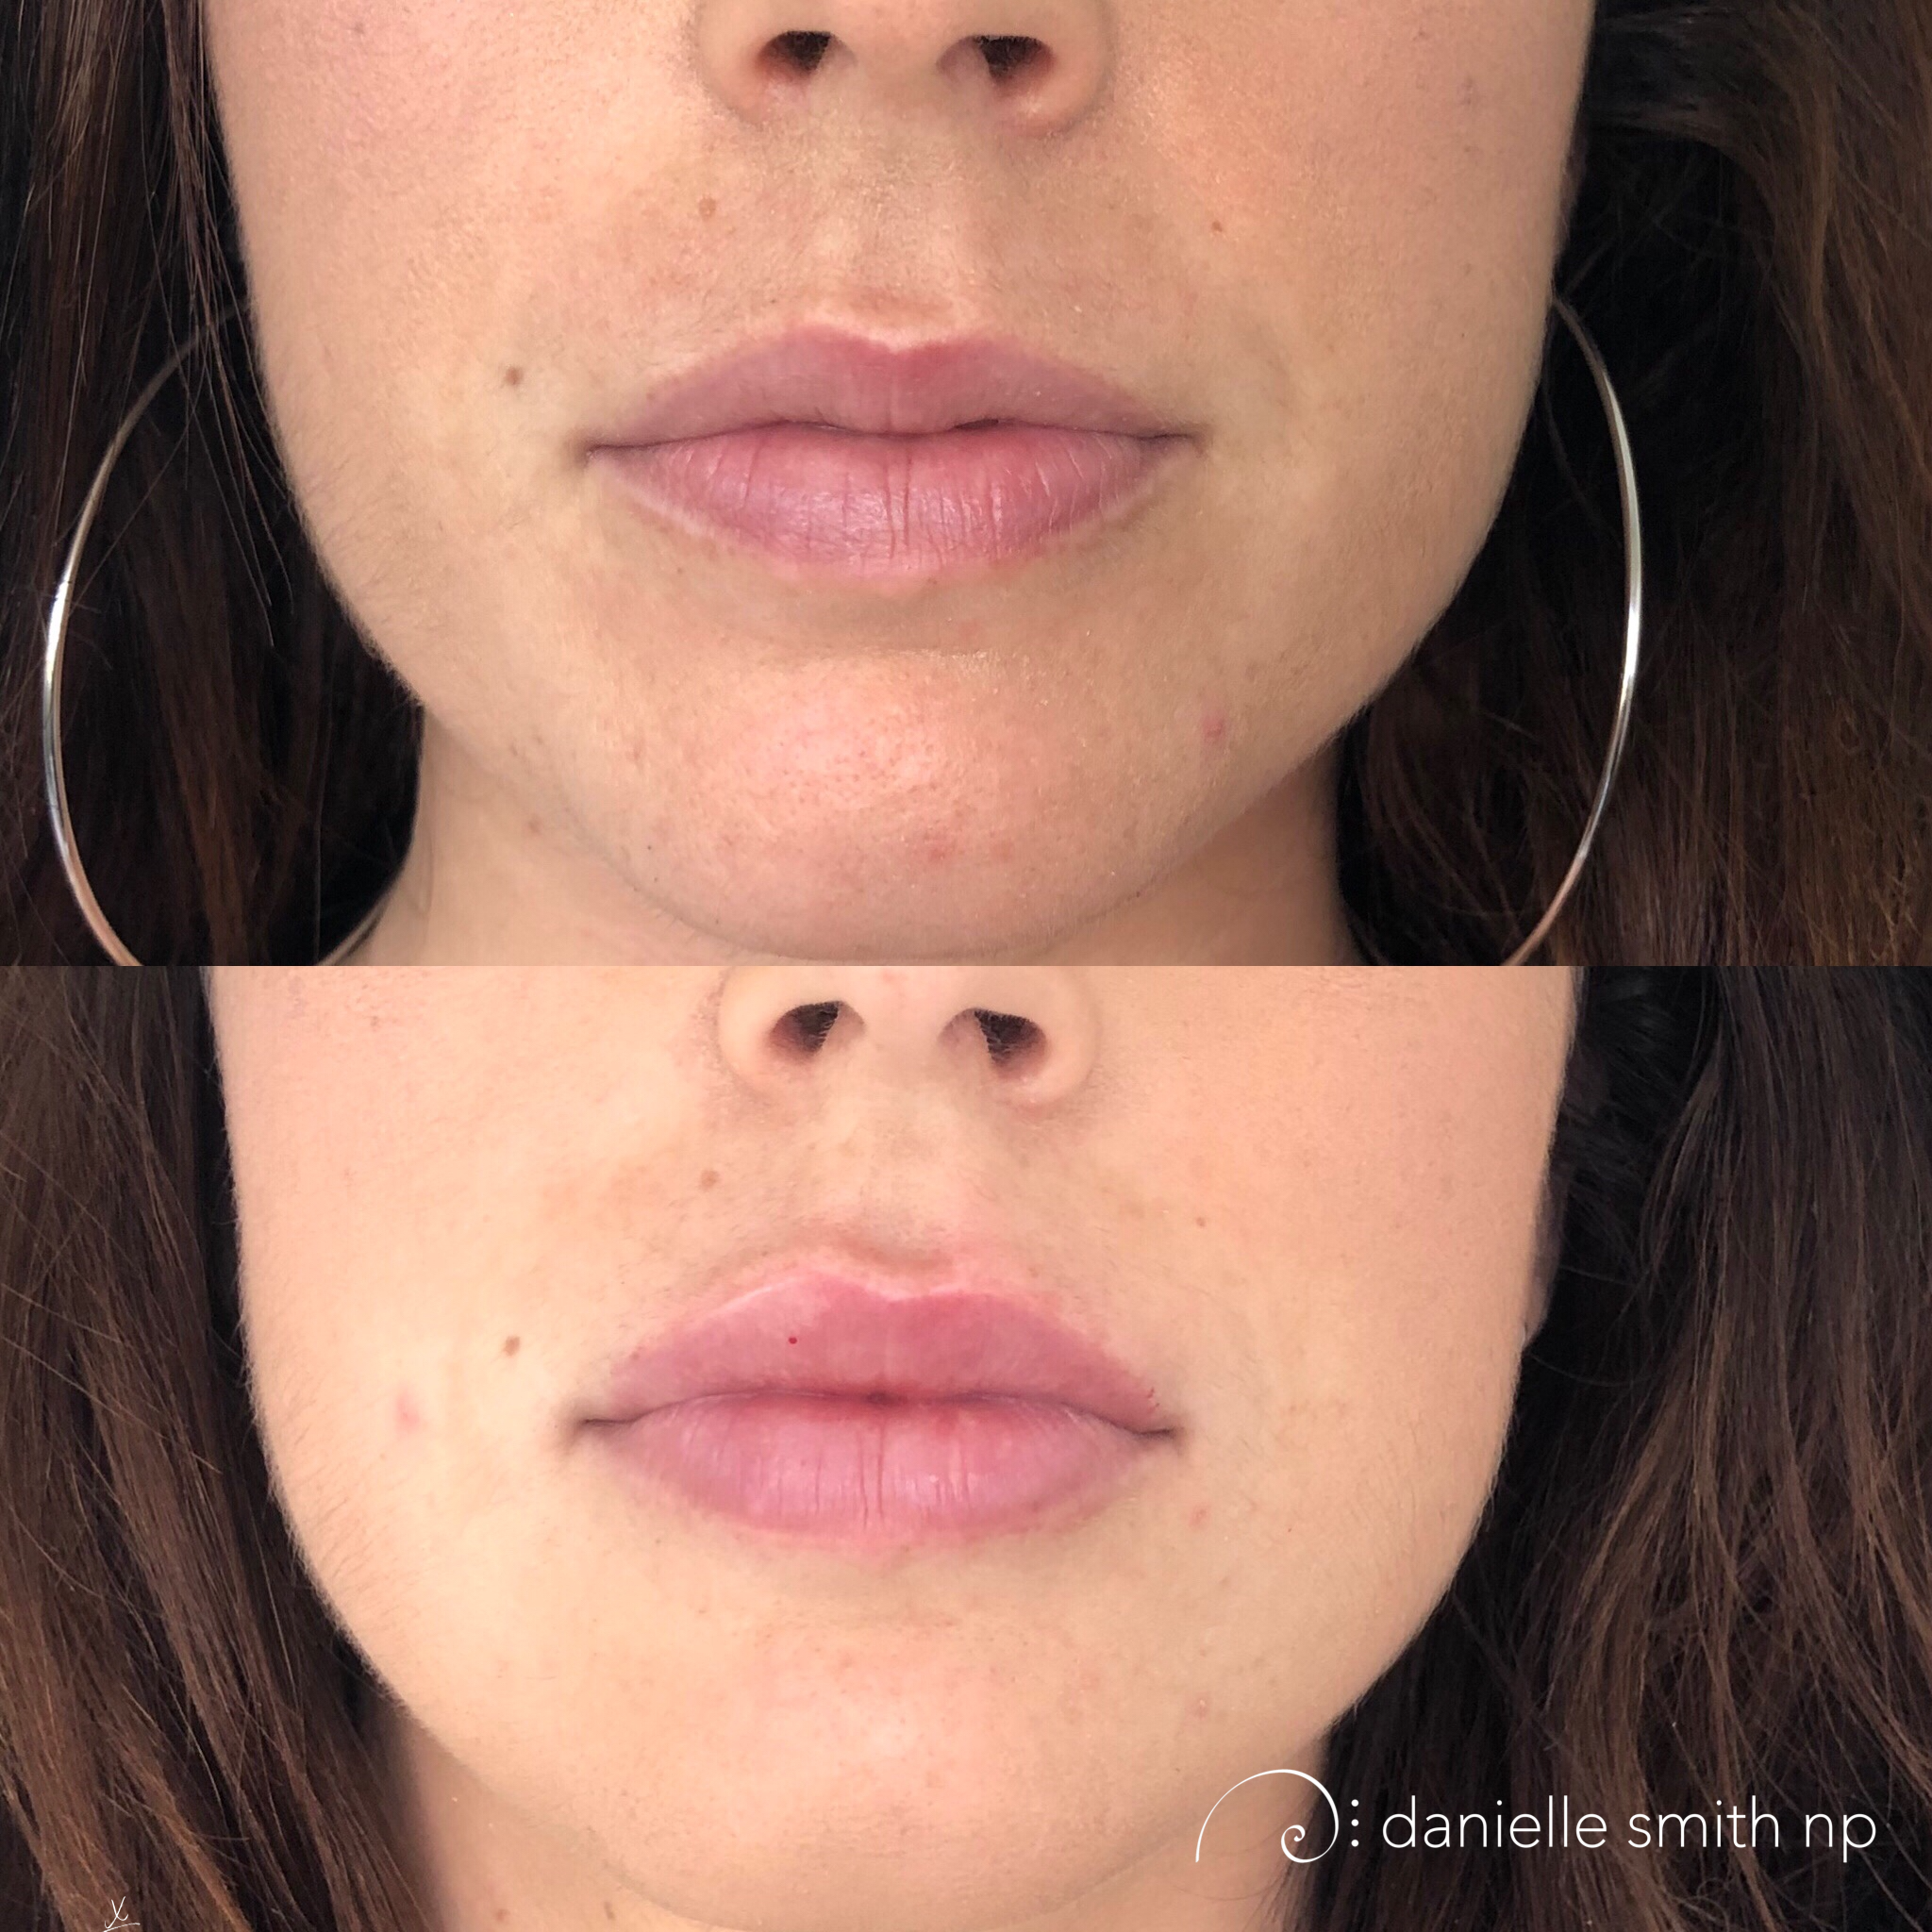 Here Danielle Smith NP used restylane for a subtle lip enhancement into the body of the lip with a combination of Volbella to the boarder but only on the lateral bottom vermillion boarder and the cupids bow. The trick here was attempting to balance out the baseline asymmetry of the GK points on the cupids bow. Once the swelling comes down they will settle out to nearly even. This may require a slight touch up to raise the left GK point.